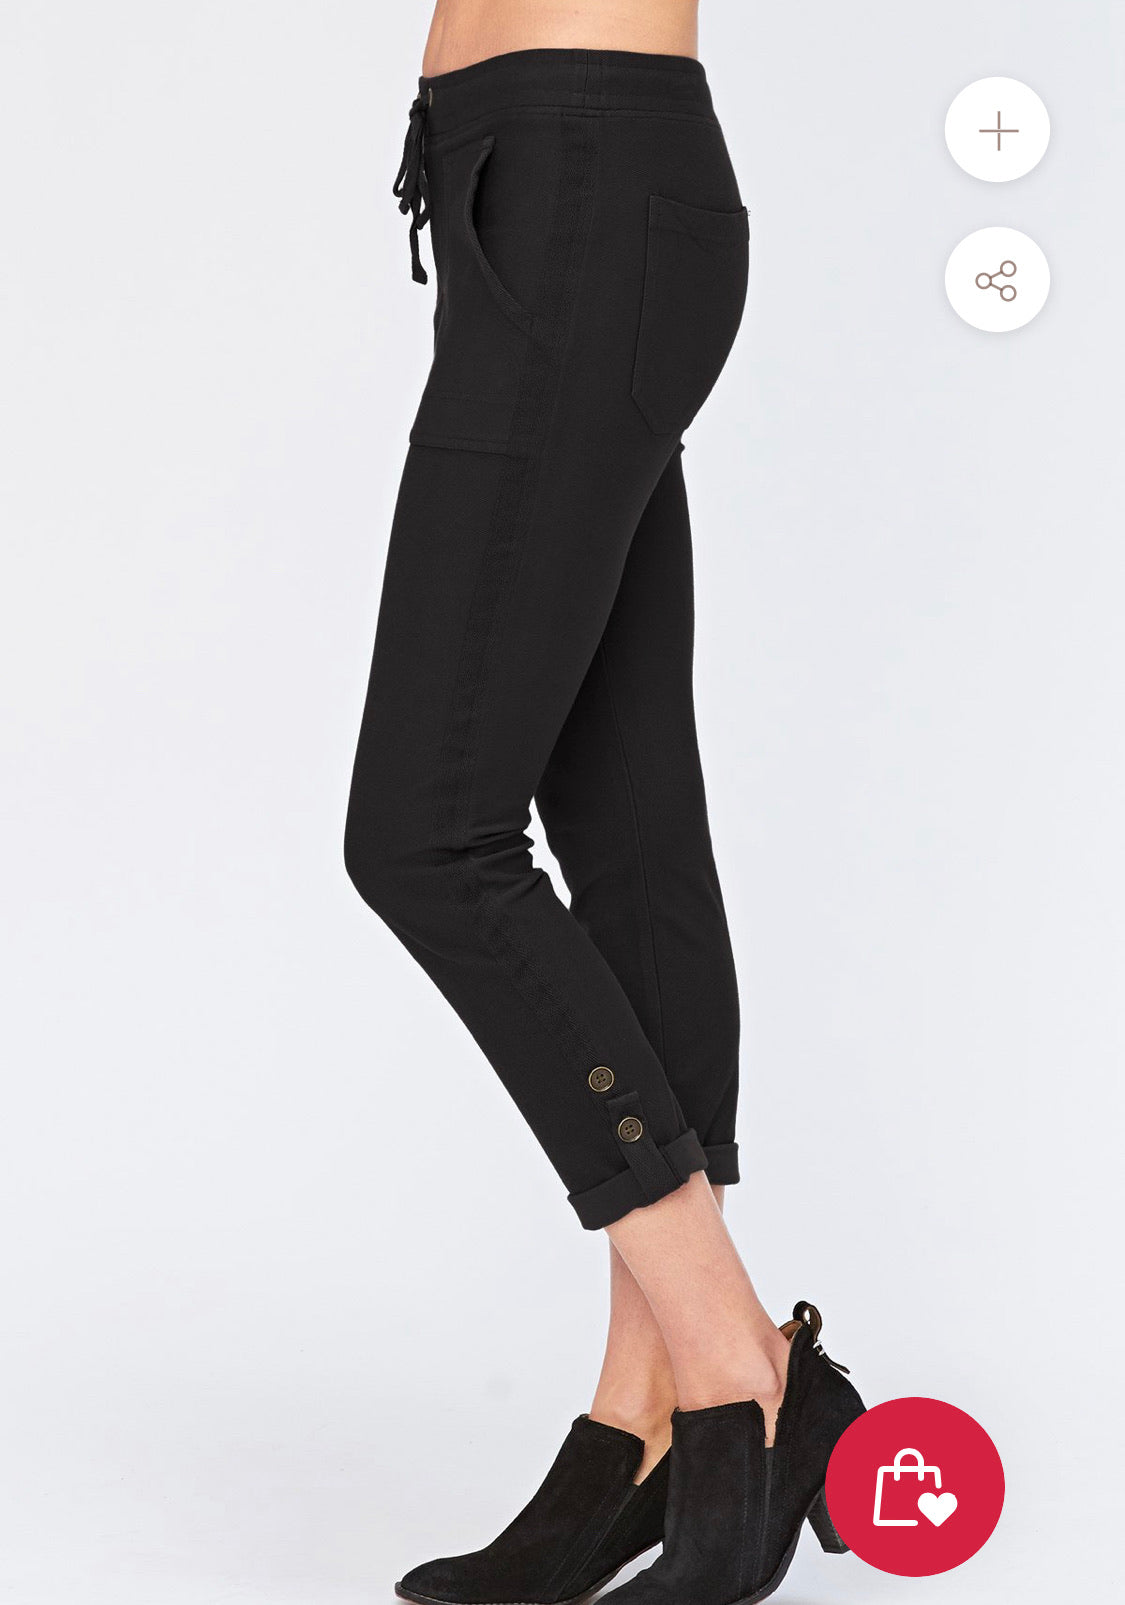 XCVI 22455 Sturges Relaxed Legging